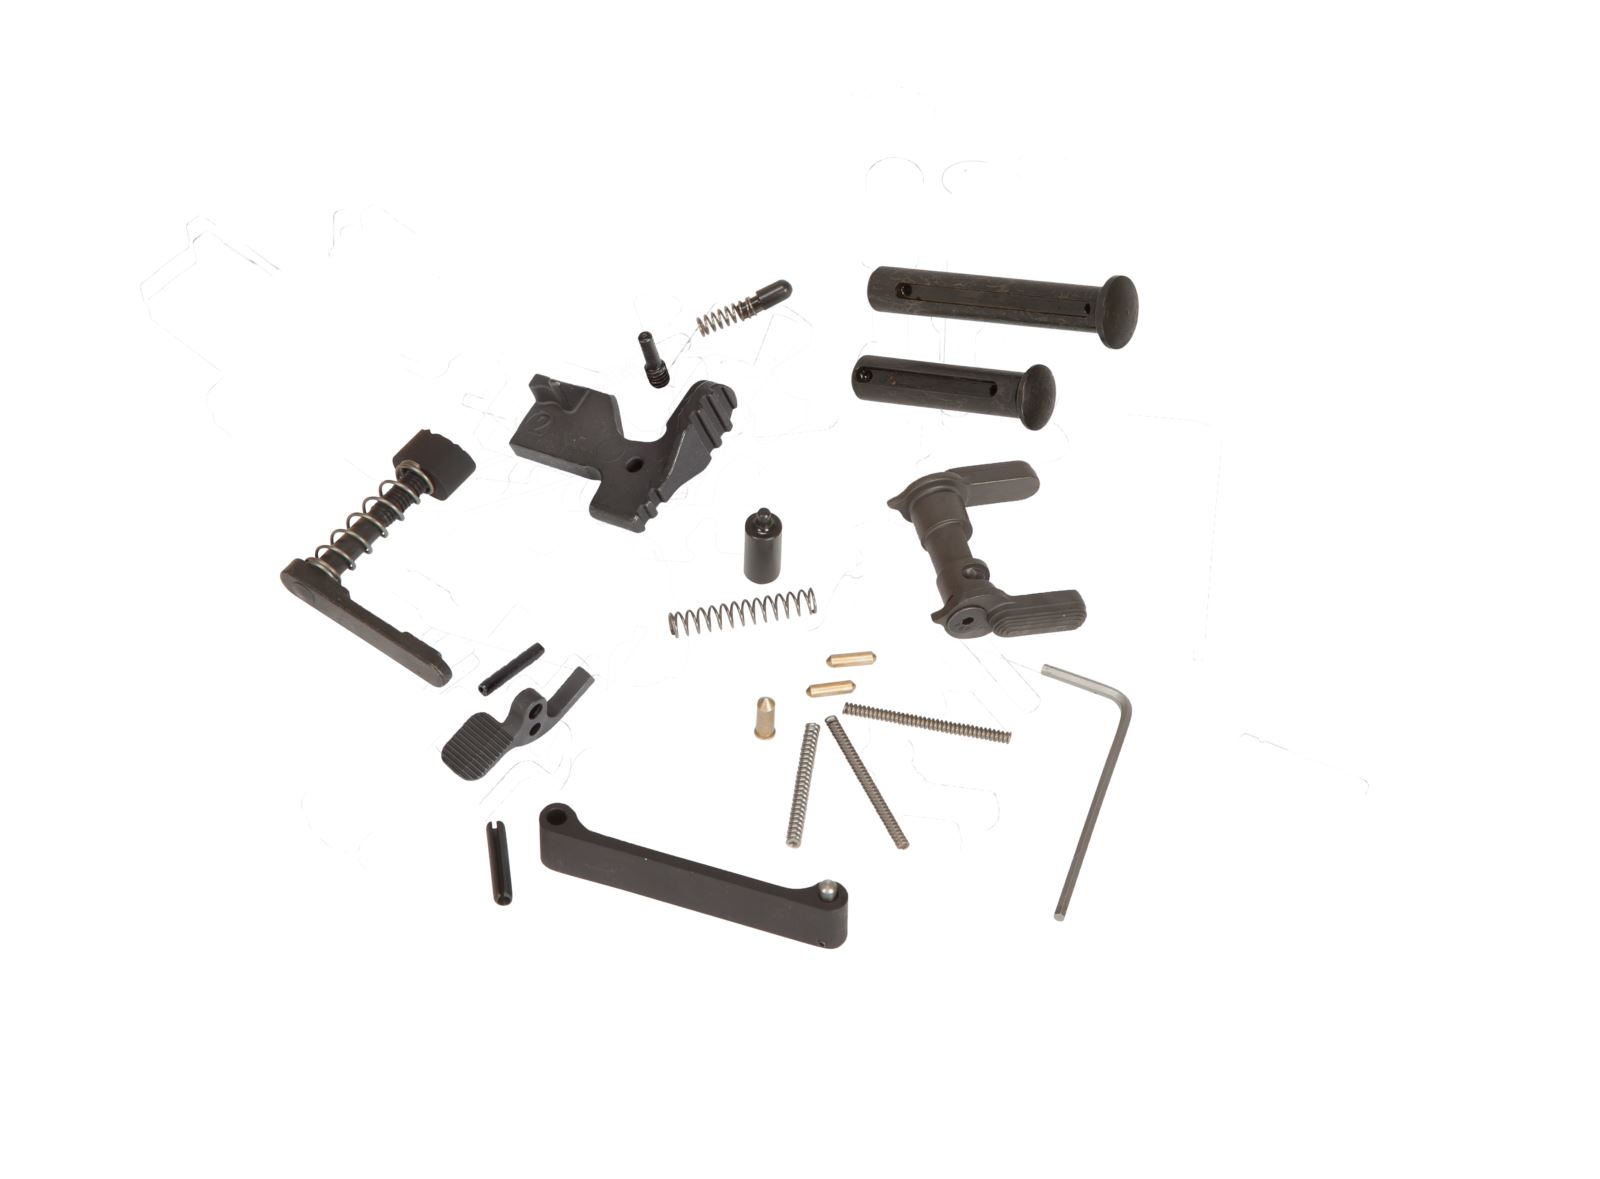 LMT Lewis Machine .308 LOWER PARTS KIT LIGHT